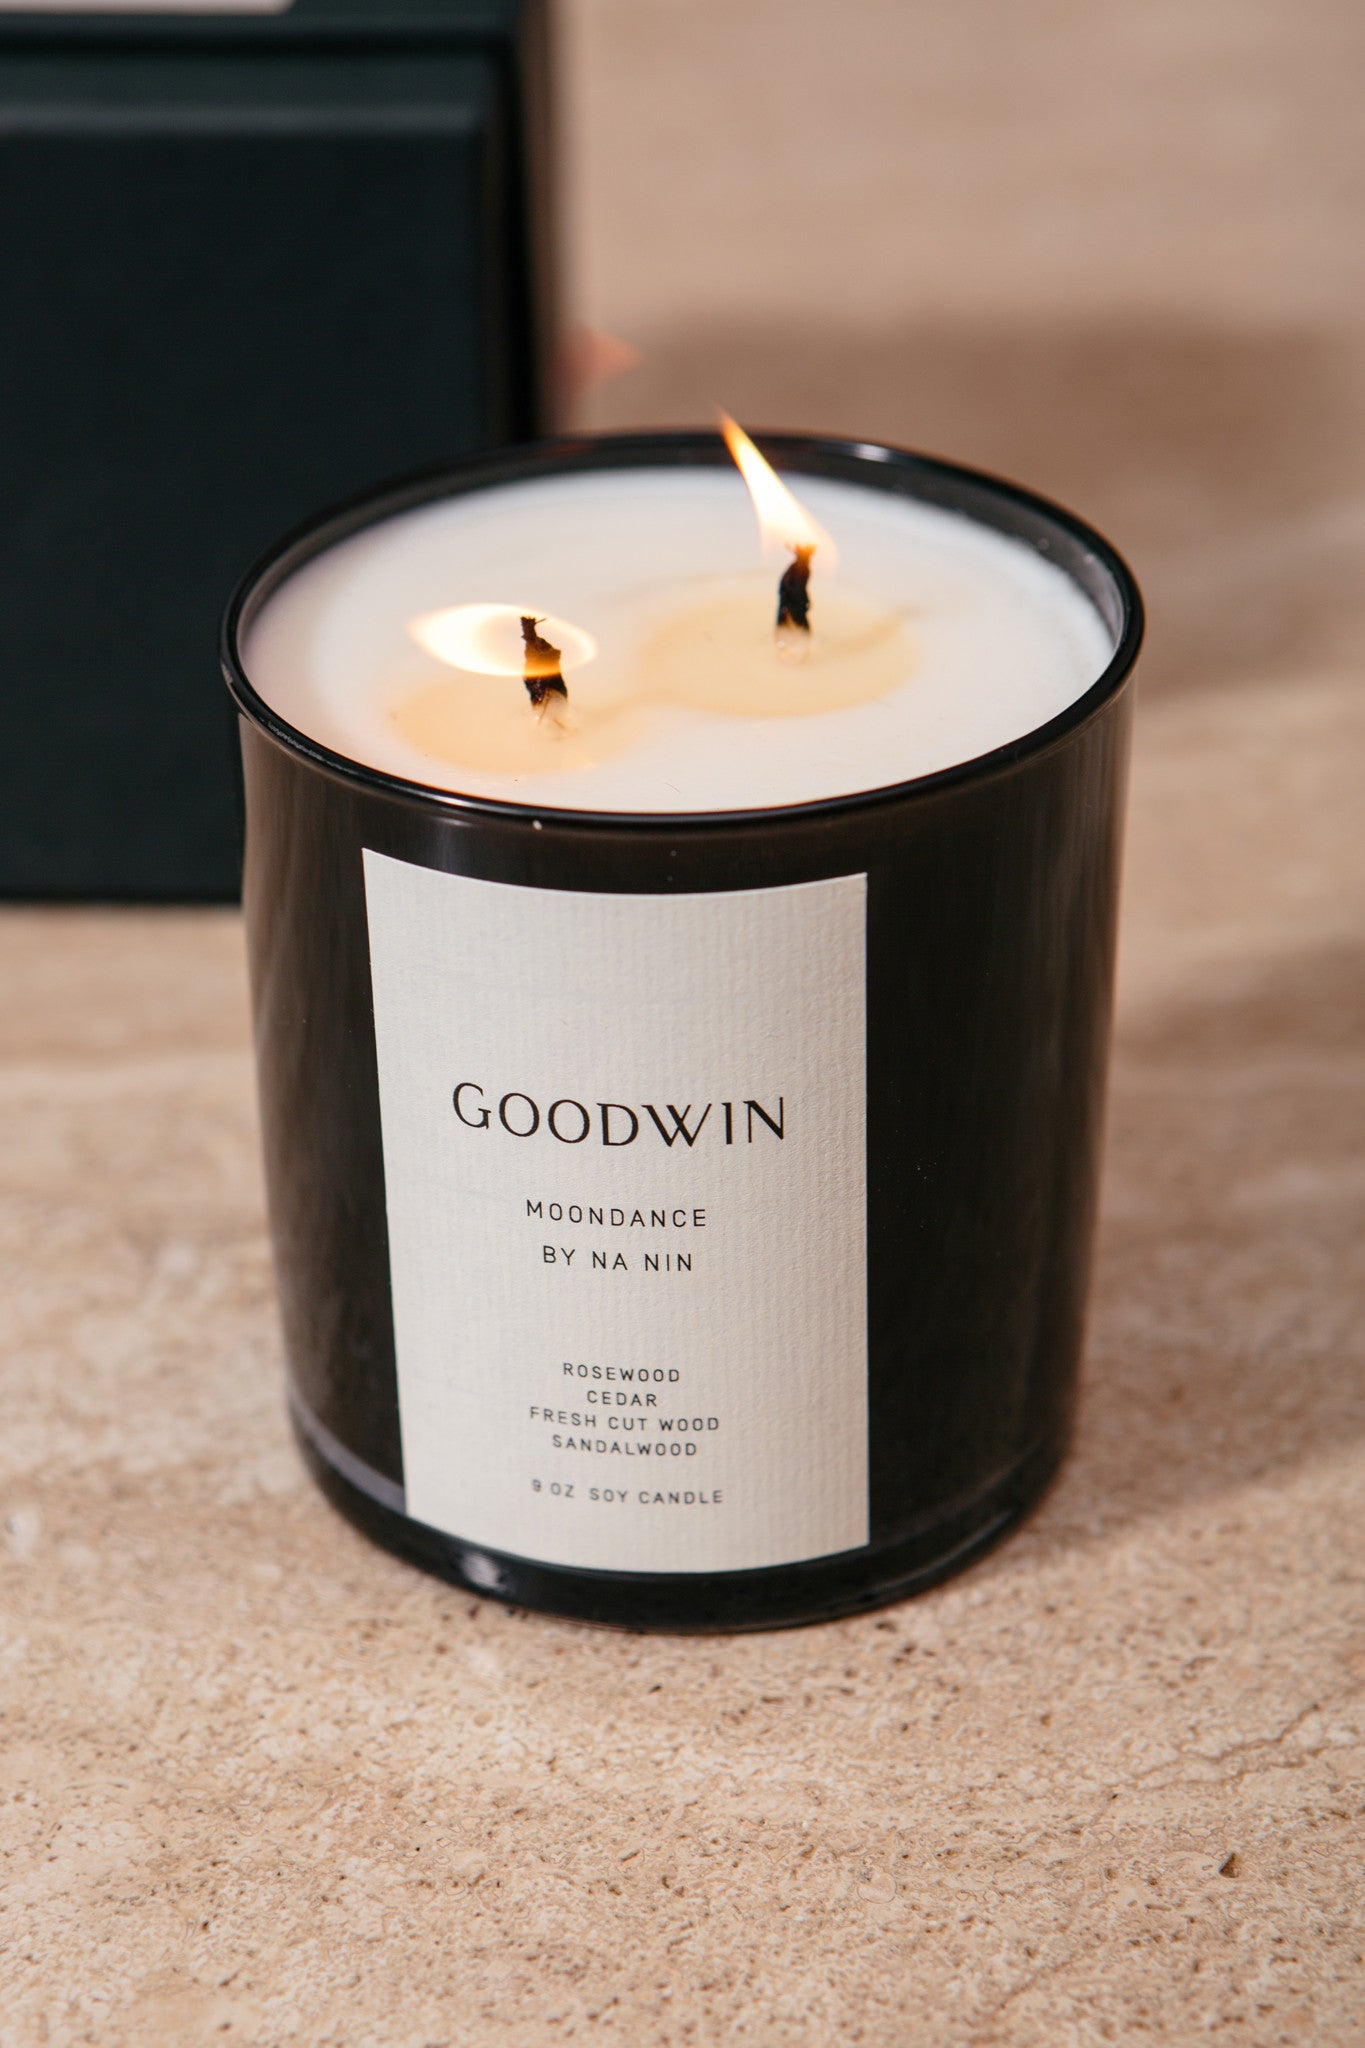 Goodwin Moondance Candle